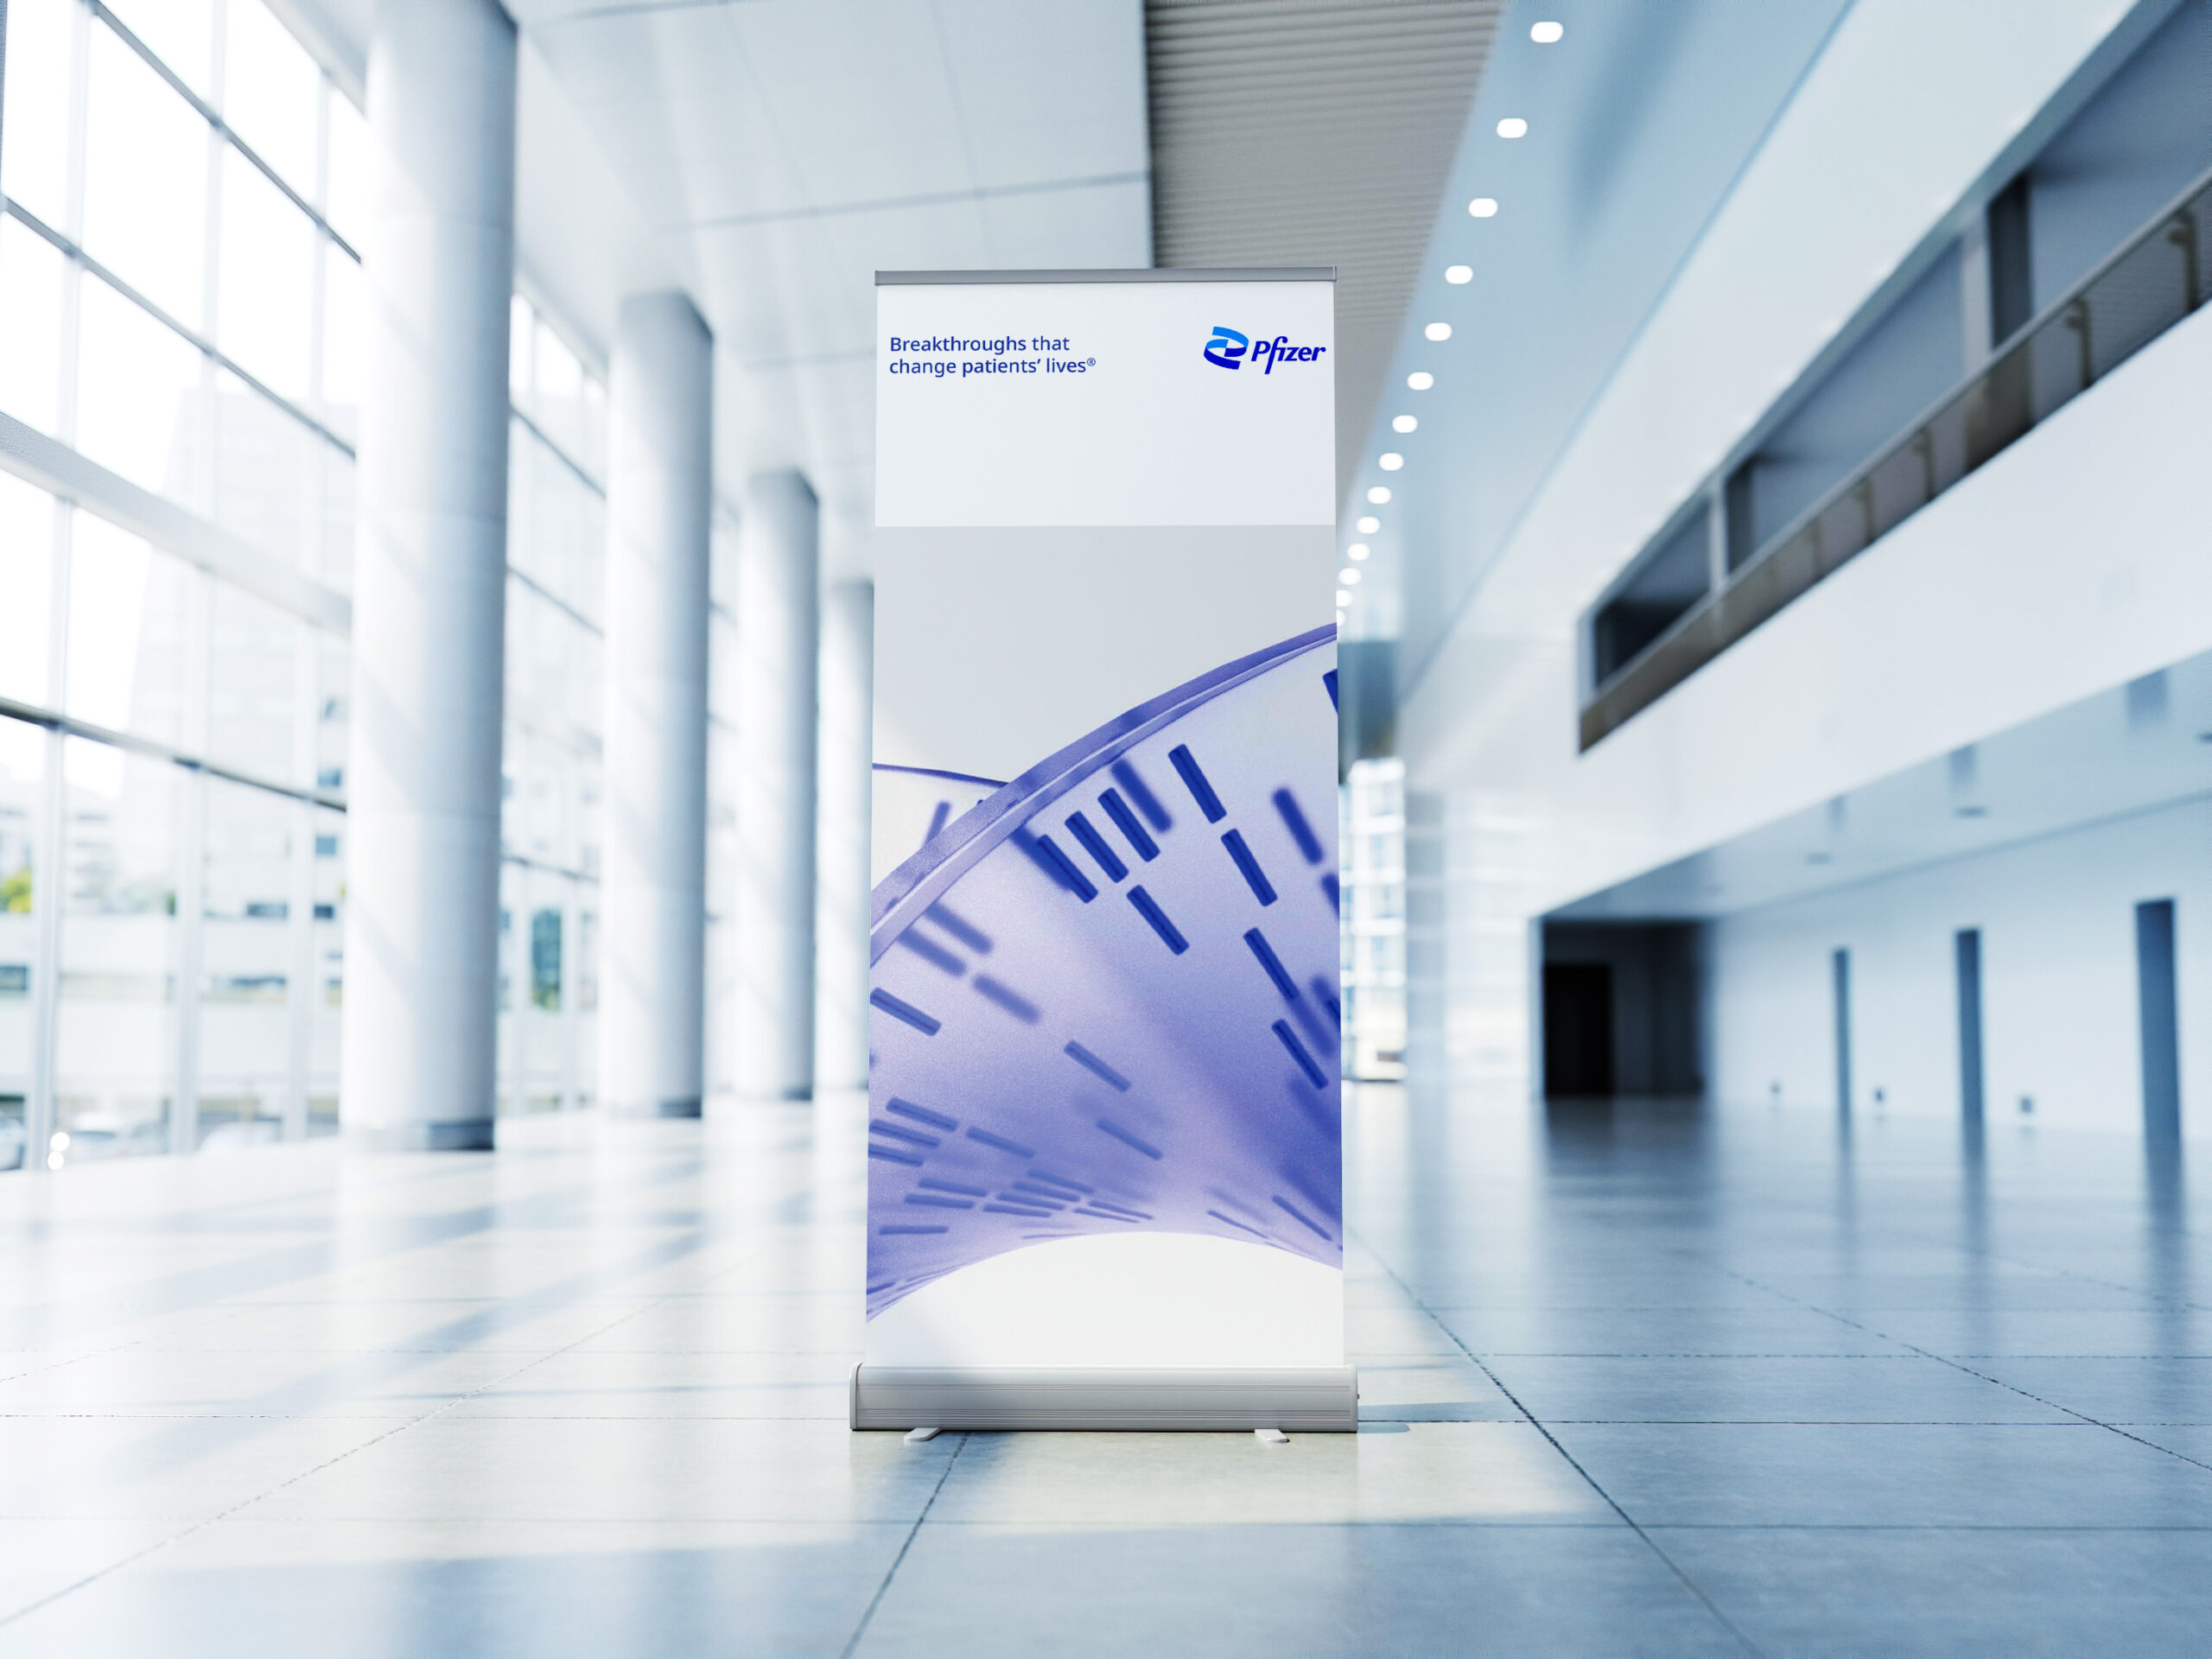 Pfizer Pull-Up Stand in Building